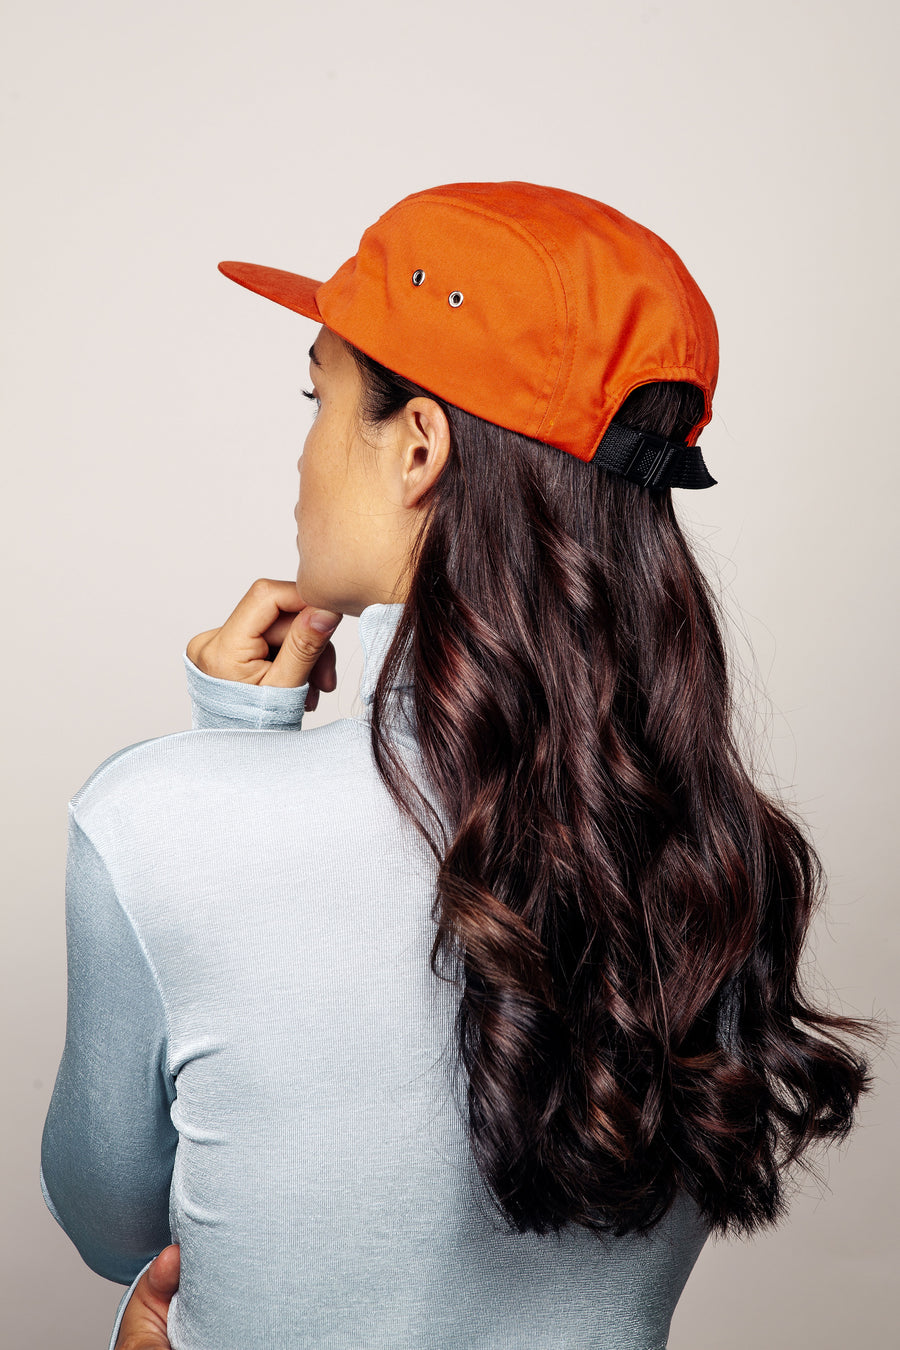 CITY CAP SNAPBACK ORANGE 5 PANELS